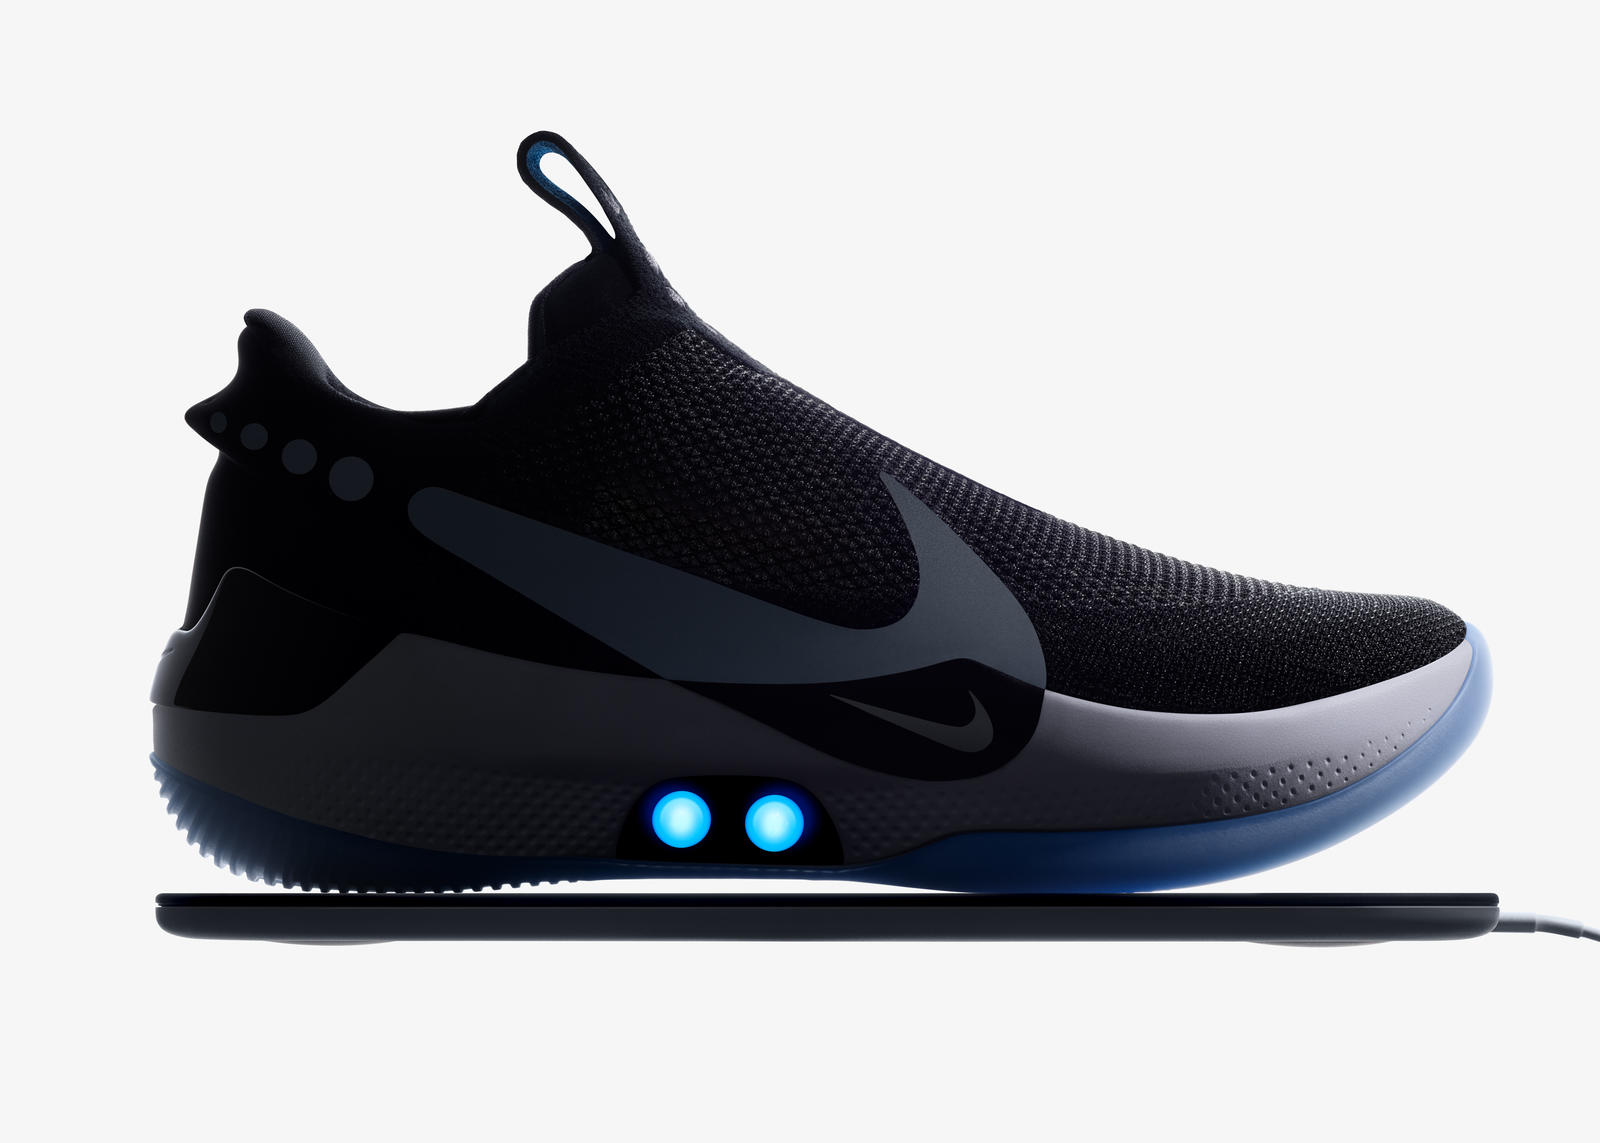 526d642b70fa7 Introducing the Nike Adapt BB - Nike News